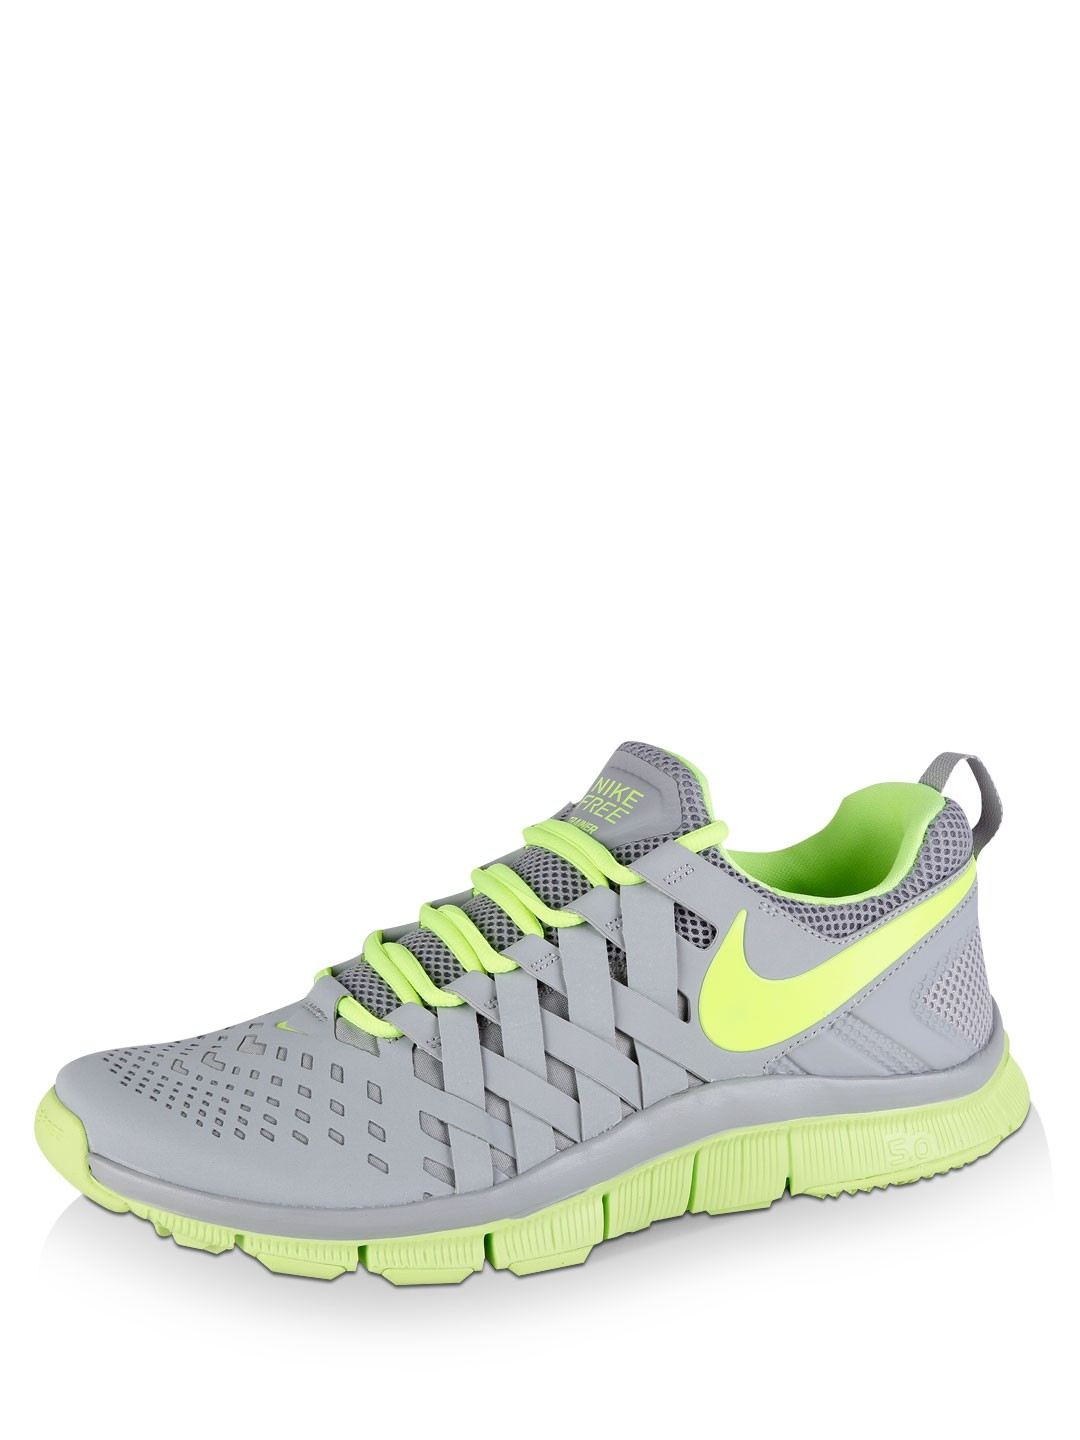 buy nike free trainer 5 0 for men men 39 s grey sports trainers sneakers online in india. Black Bedroom Furniture Sets. Home Design Ideas